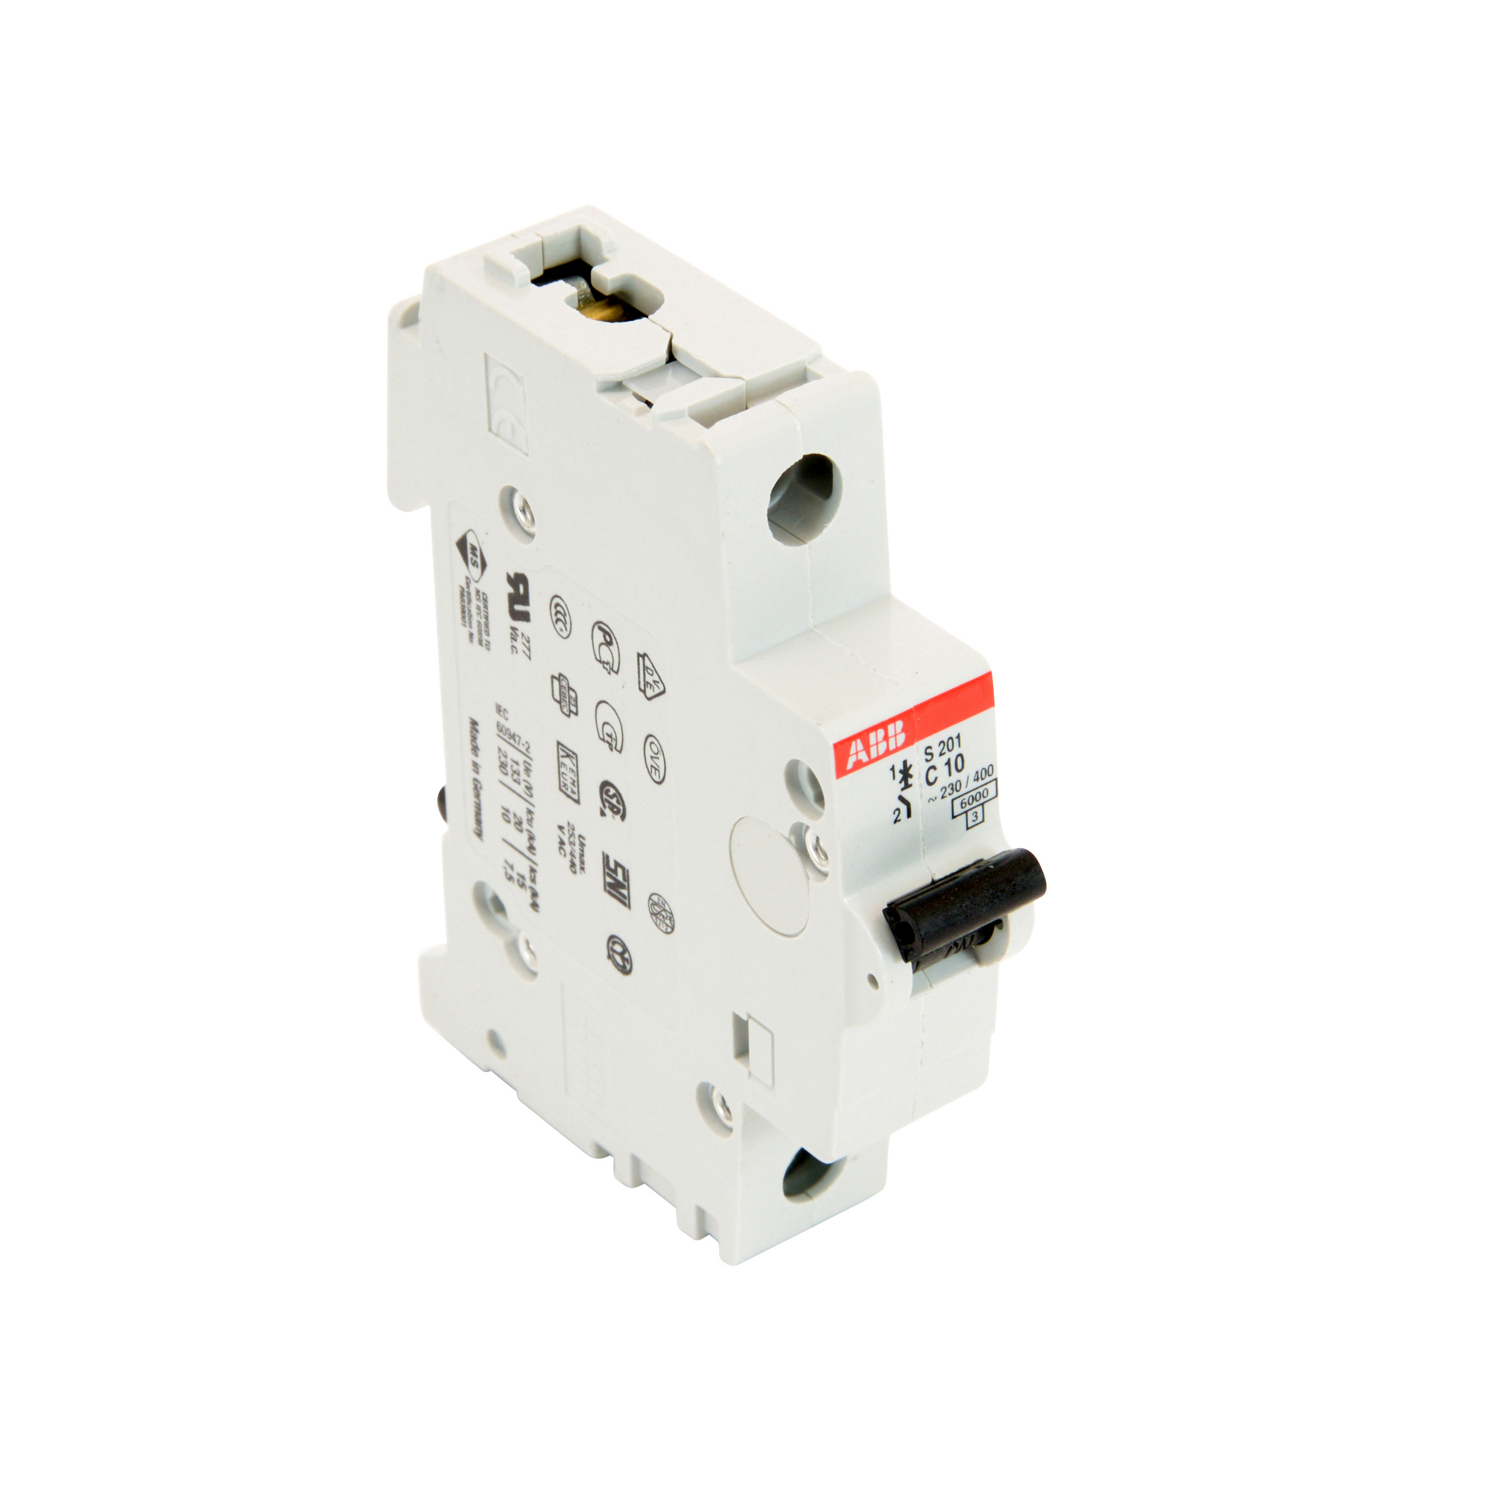 ABB S201-C10 1 pole, 10 amps rated at 480Y/277 VAC, UL 1077 series miniature circuit breaker with thermal-magnetic trip device, C trip curve, and 6kA interrupt current rating